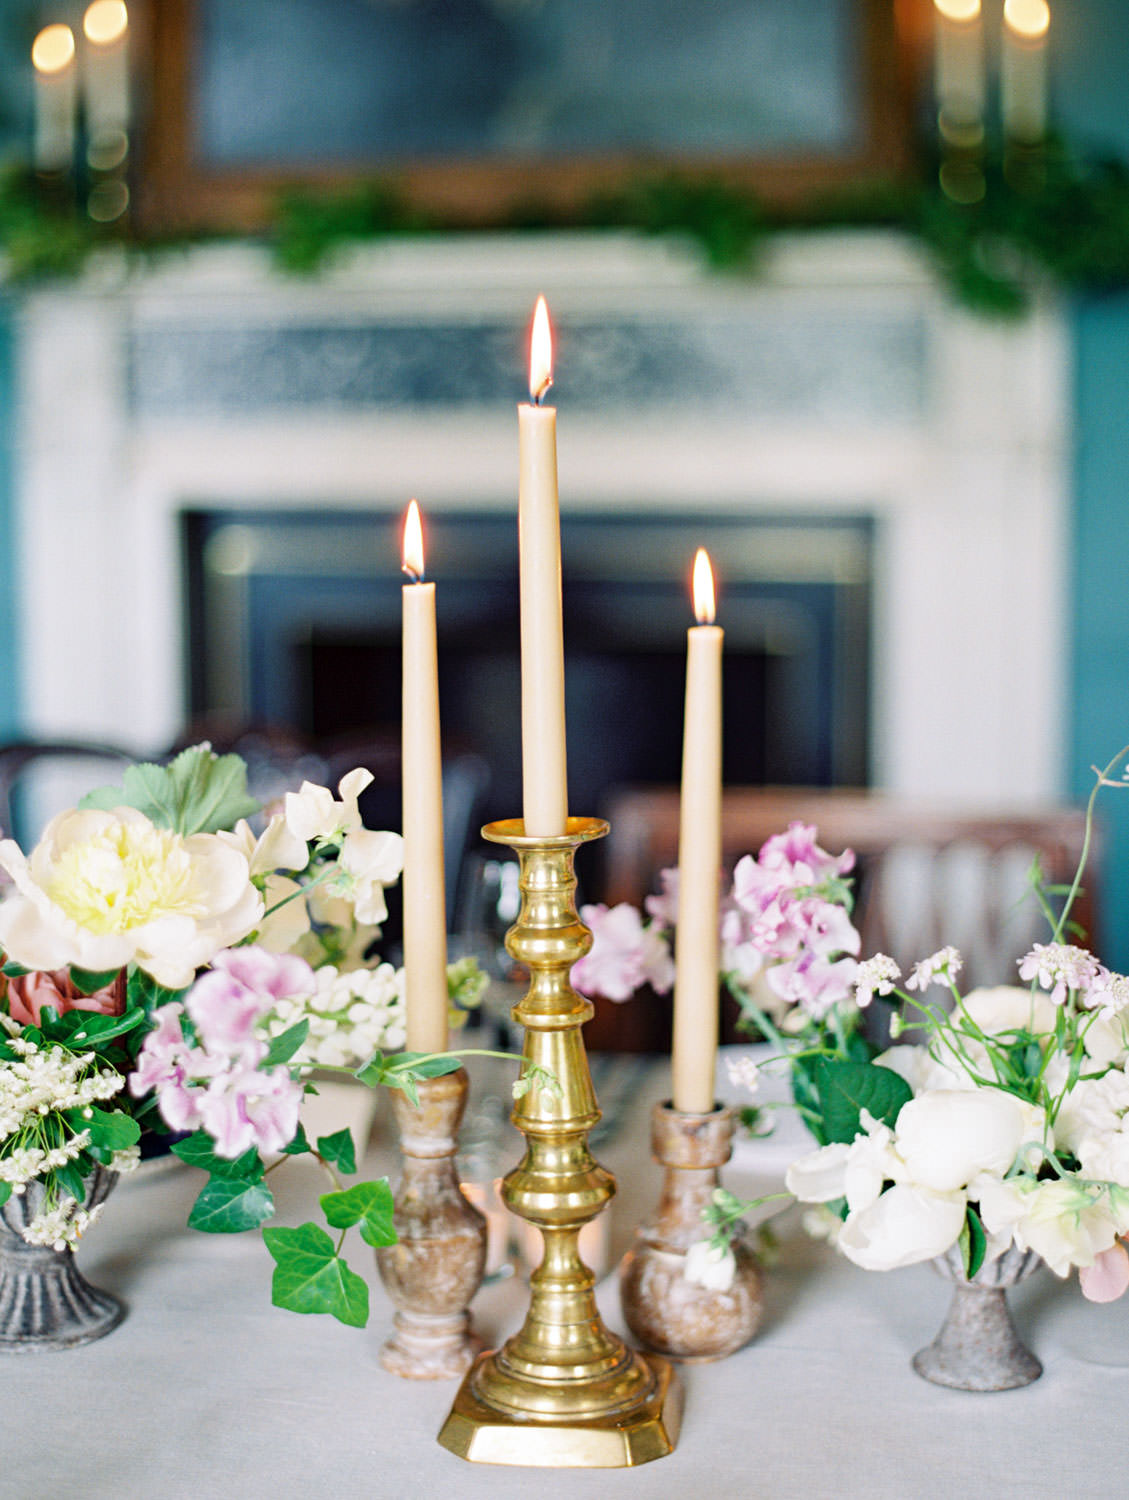 Dinner tablescape styled by Joy Proctor and Bows and Arrows Flowers. Blue chinoiserie tea cups, grey linen, taupe tall candles, and centerpieces with mauve, ivory, yellow, and green. Flutter Magazine Retreat in the Cotswolds at Norton Hall in Mickleton, England. Photo by Cavin Elizabeth Photography on film